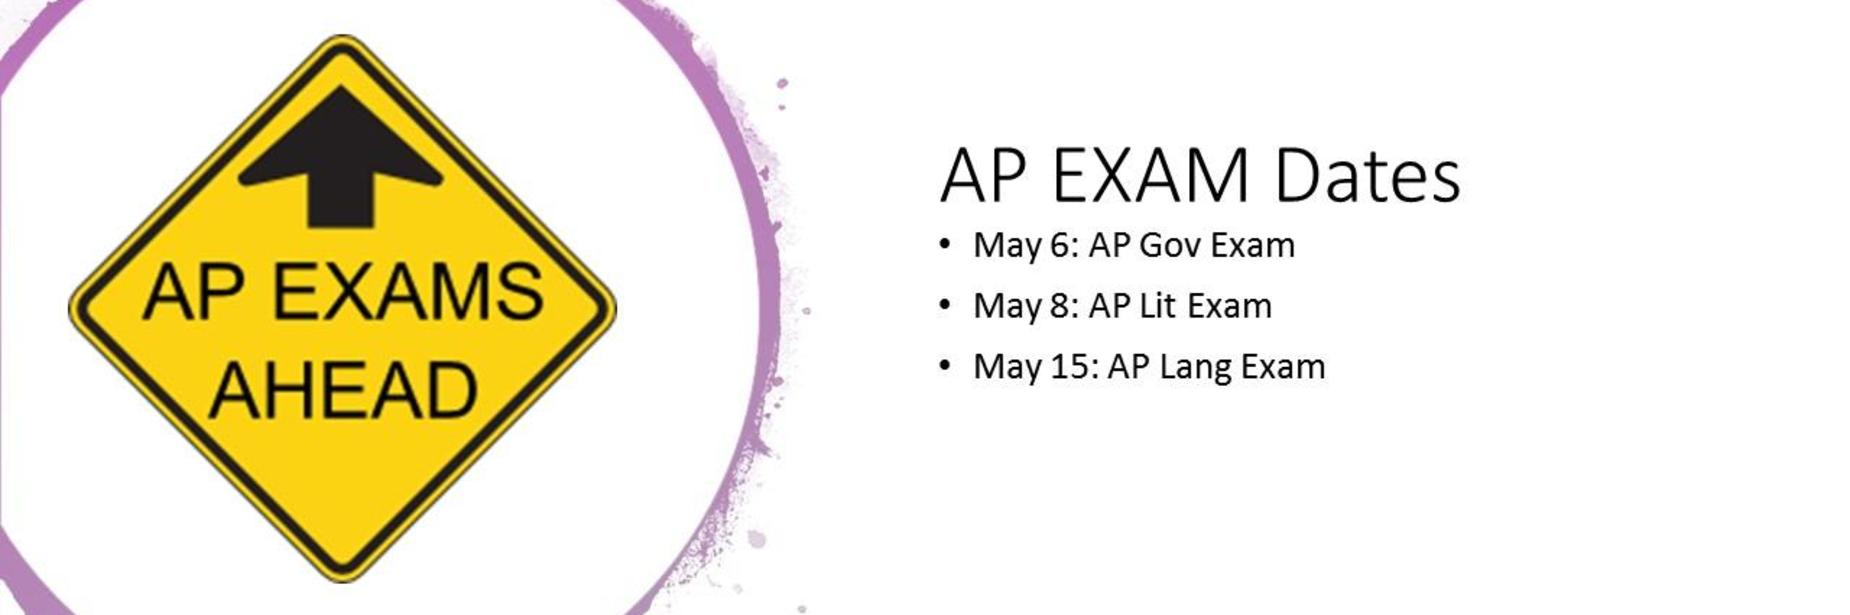 AP Exams Ahead AP Exam Dates May 6: AP Gov Exam May 8: AP Lit Exam May 15: AP Lang Exam